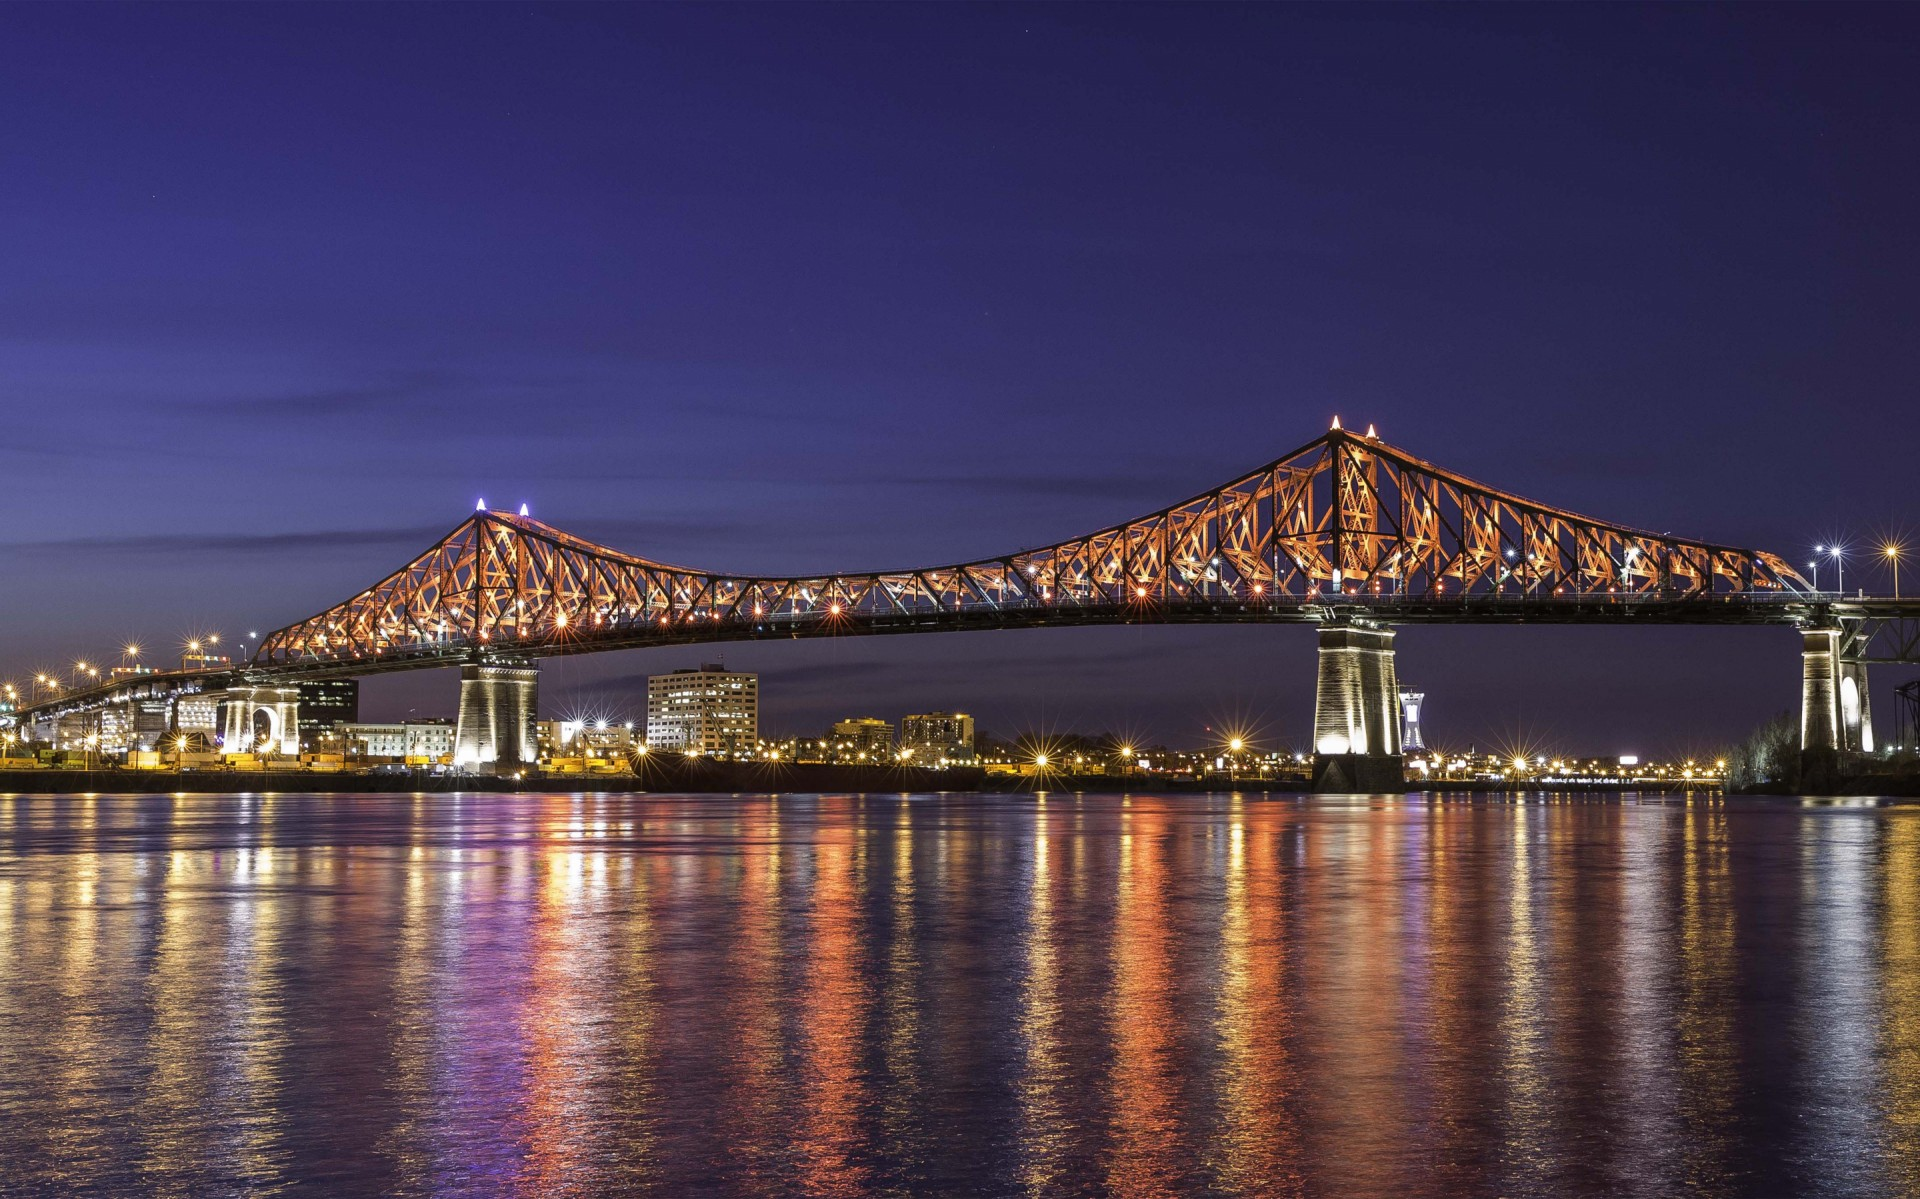 Quebec Lighting designers collaborated with a single purpose, creating an installation that will be enjoyed by all for the next 10 years and beyond. – The Jacques Cartier and Champlain Bridges Incorporated